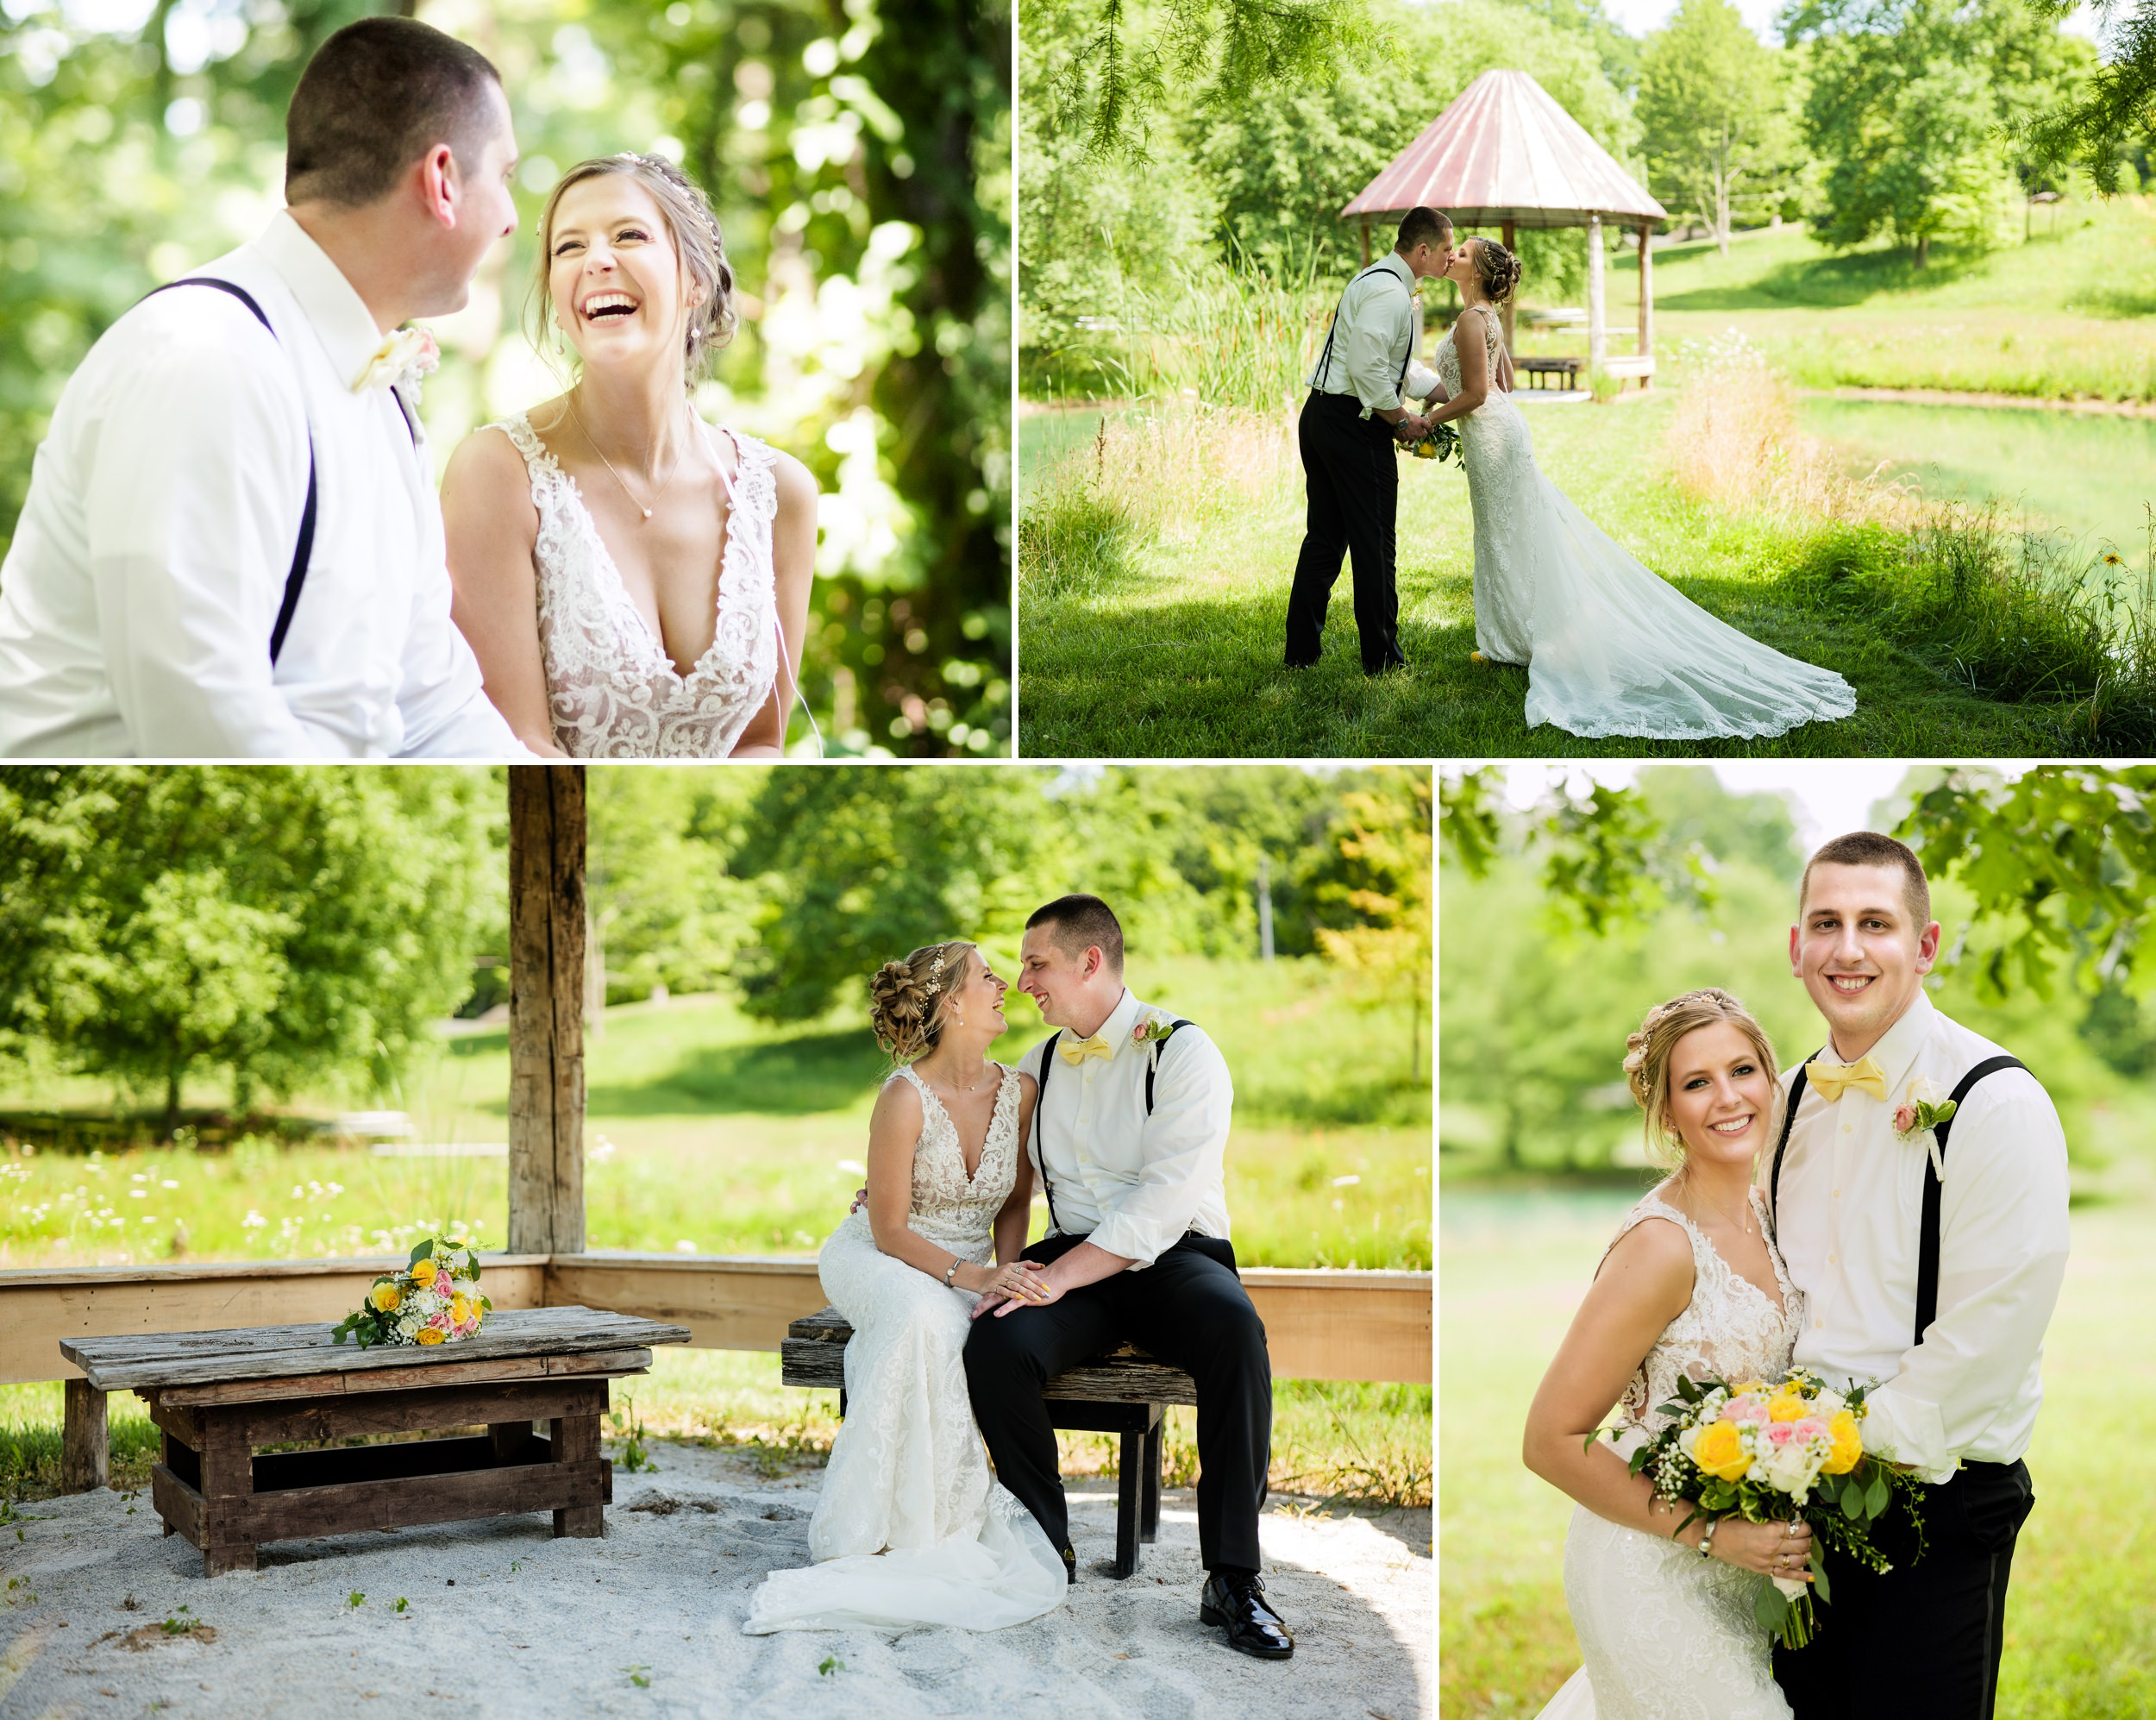 Candid wedding photos at Heston Hills Event Center.